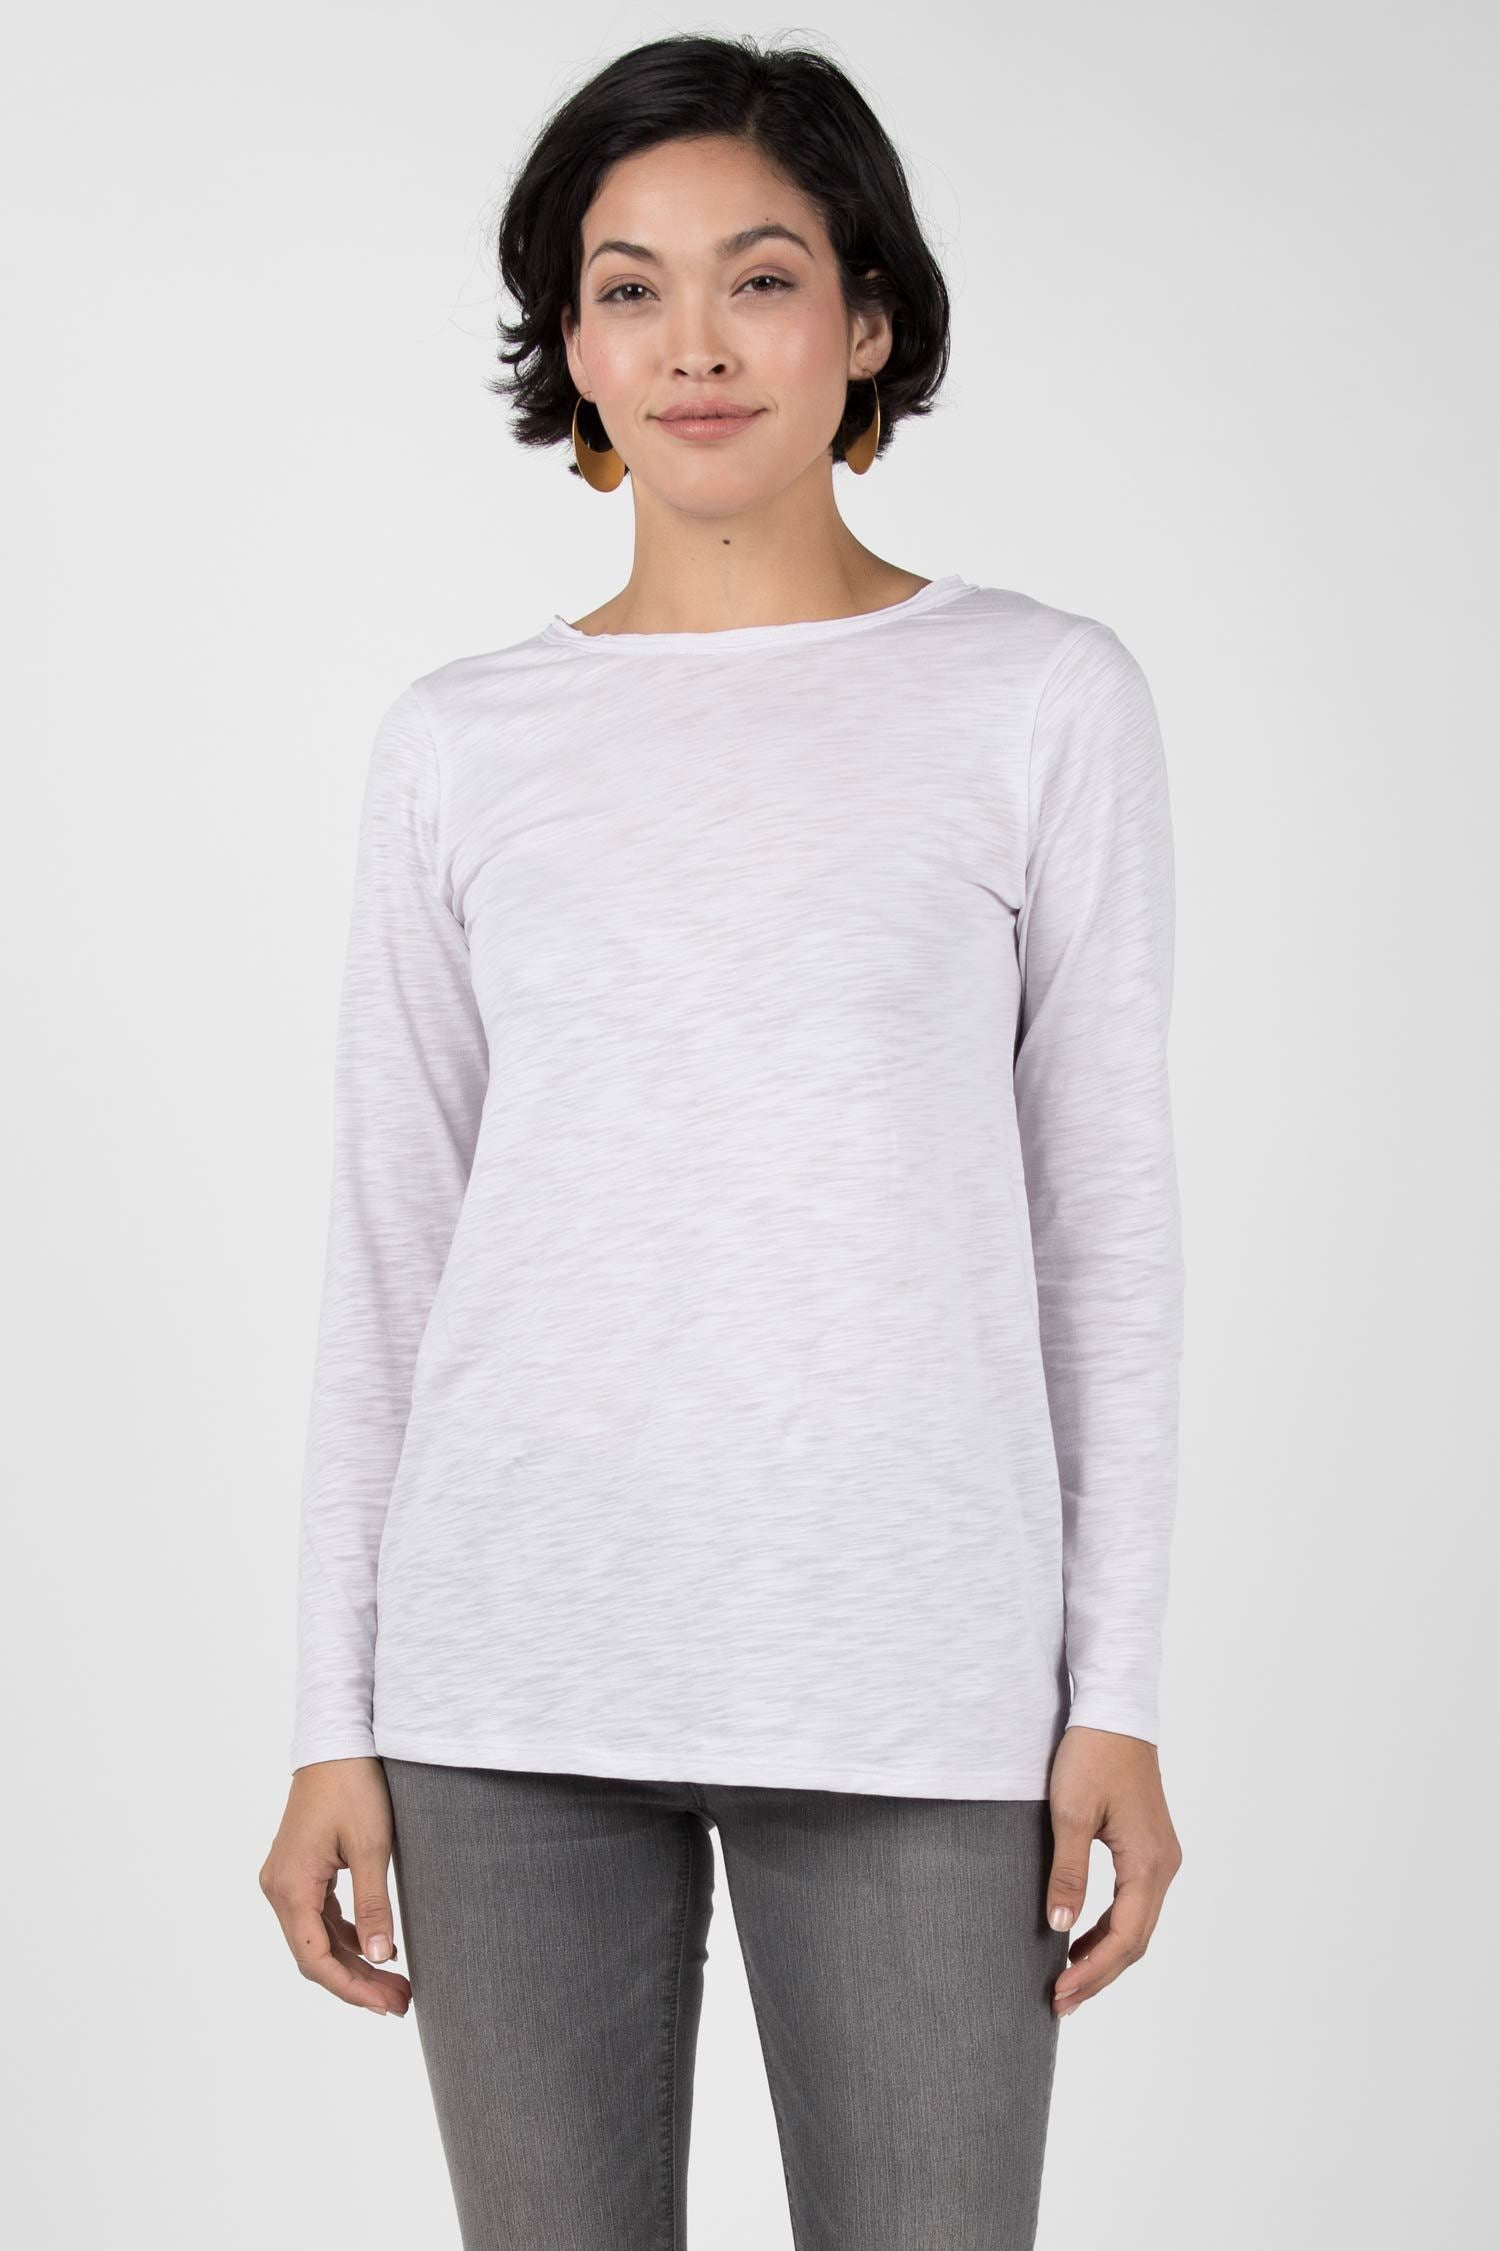 Womens Organic Cotton Shirt | Reversible Boatneck Top